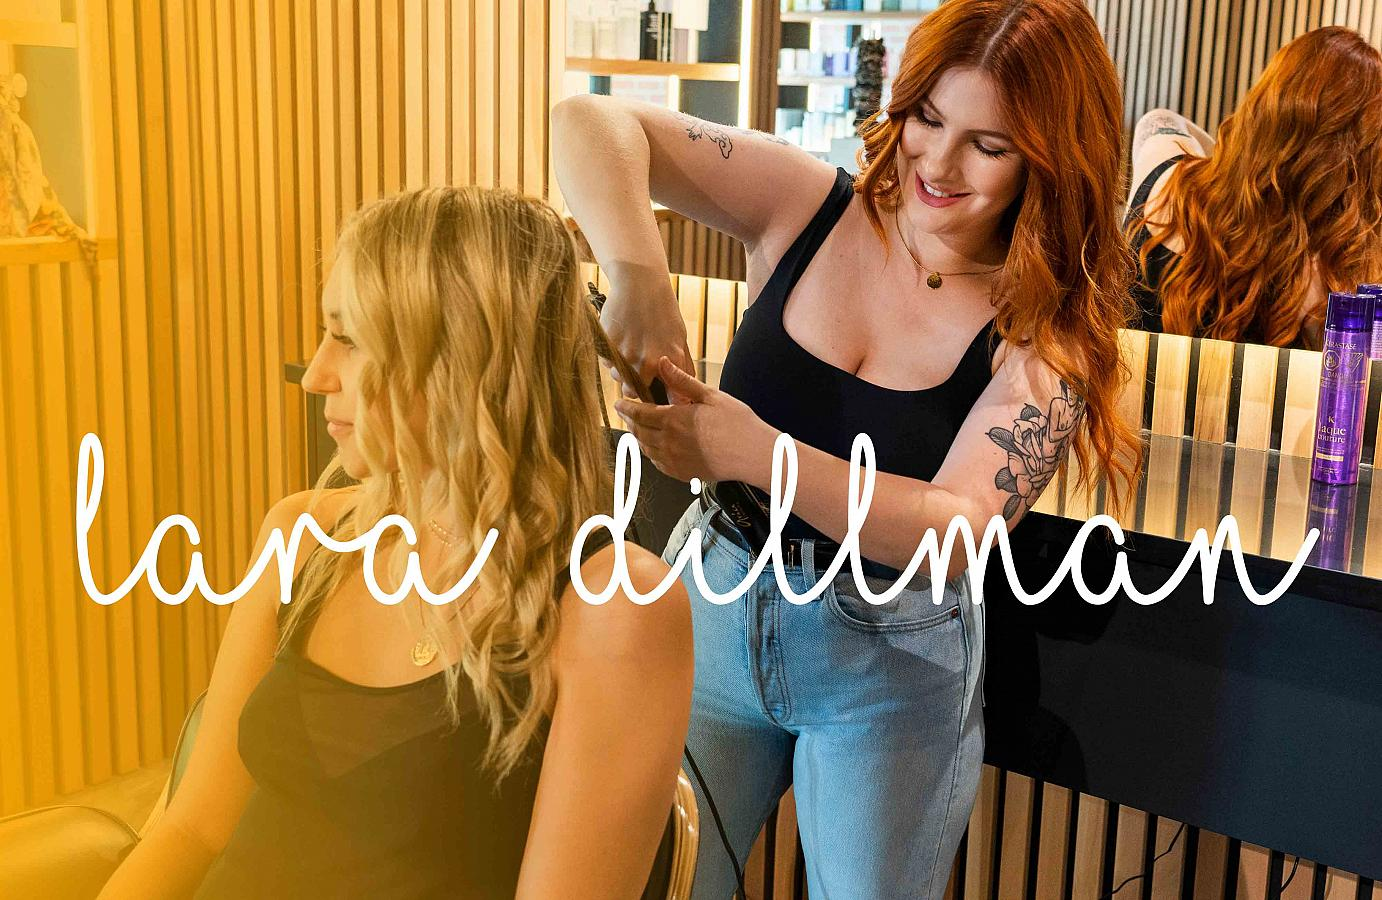 Fairy Hair Godmother: BRUSH Salon Senior Hairstylist Lara Dillman